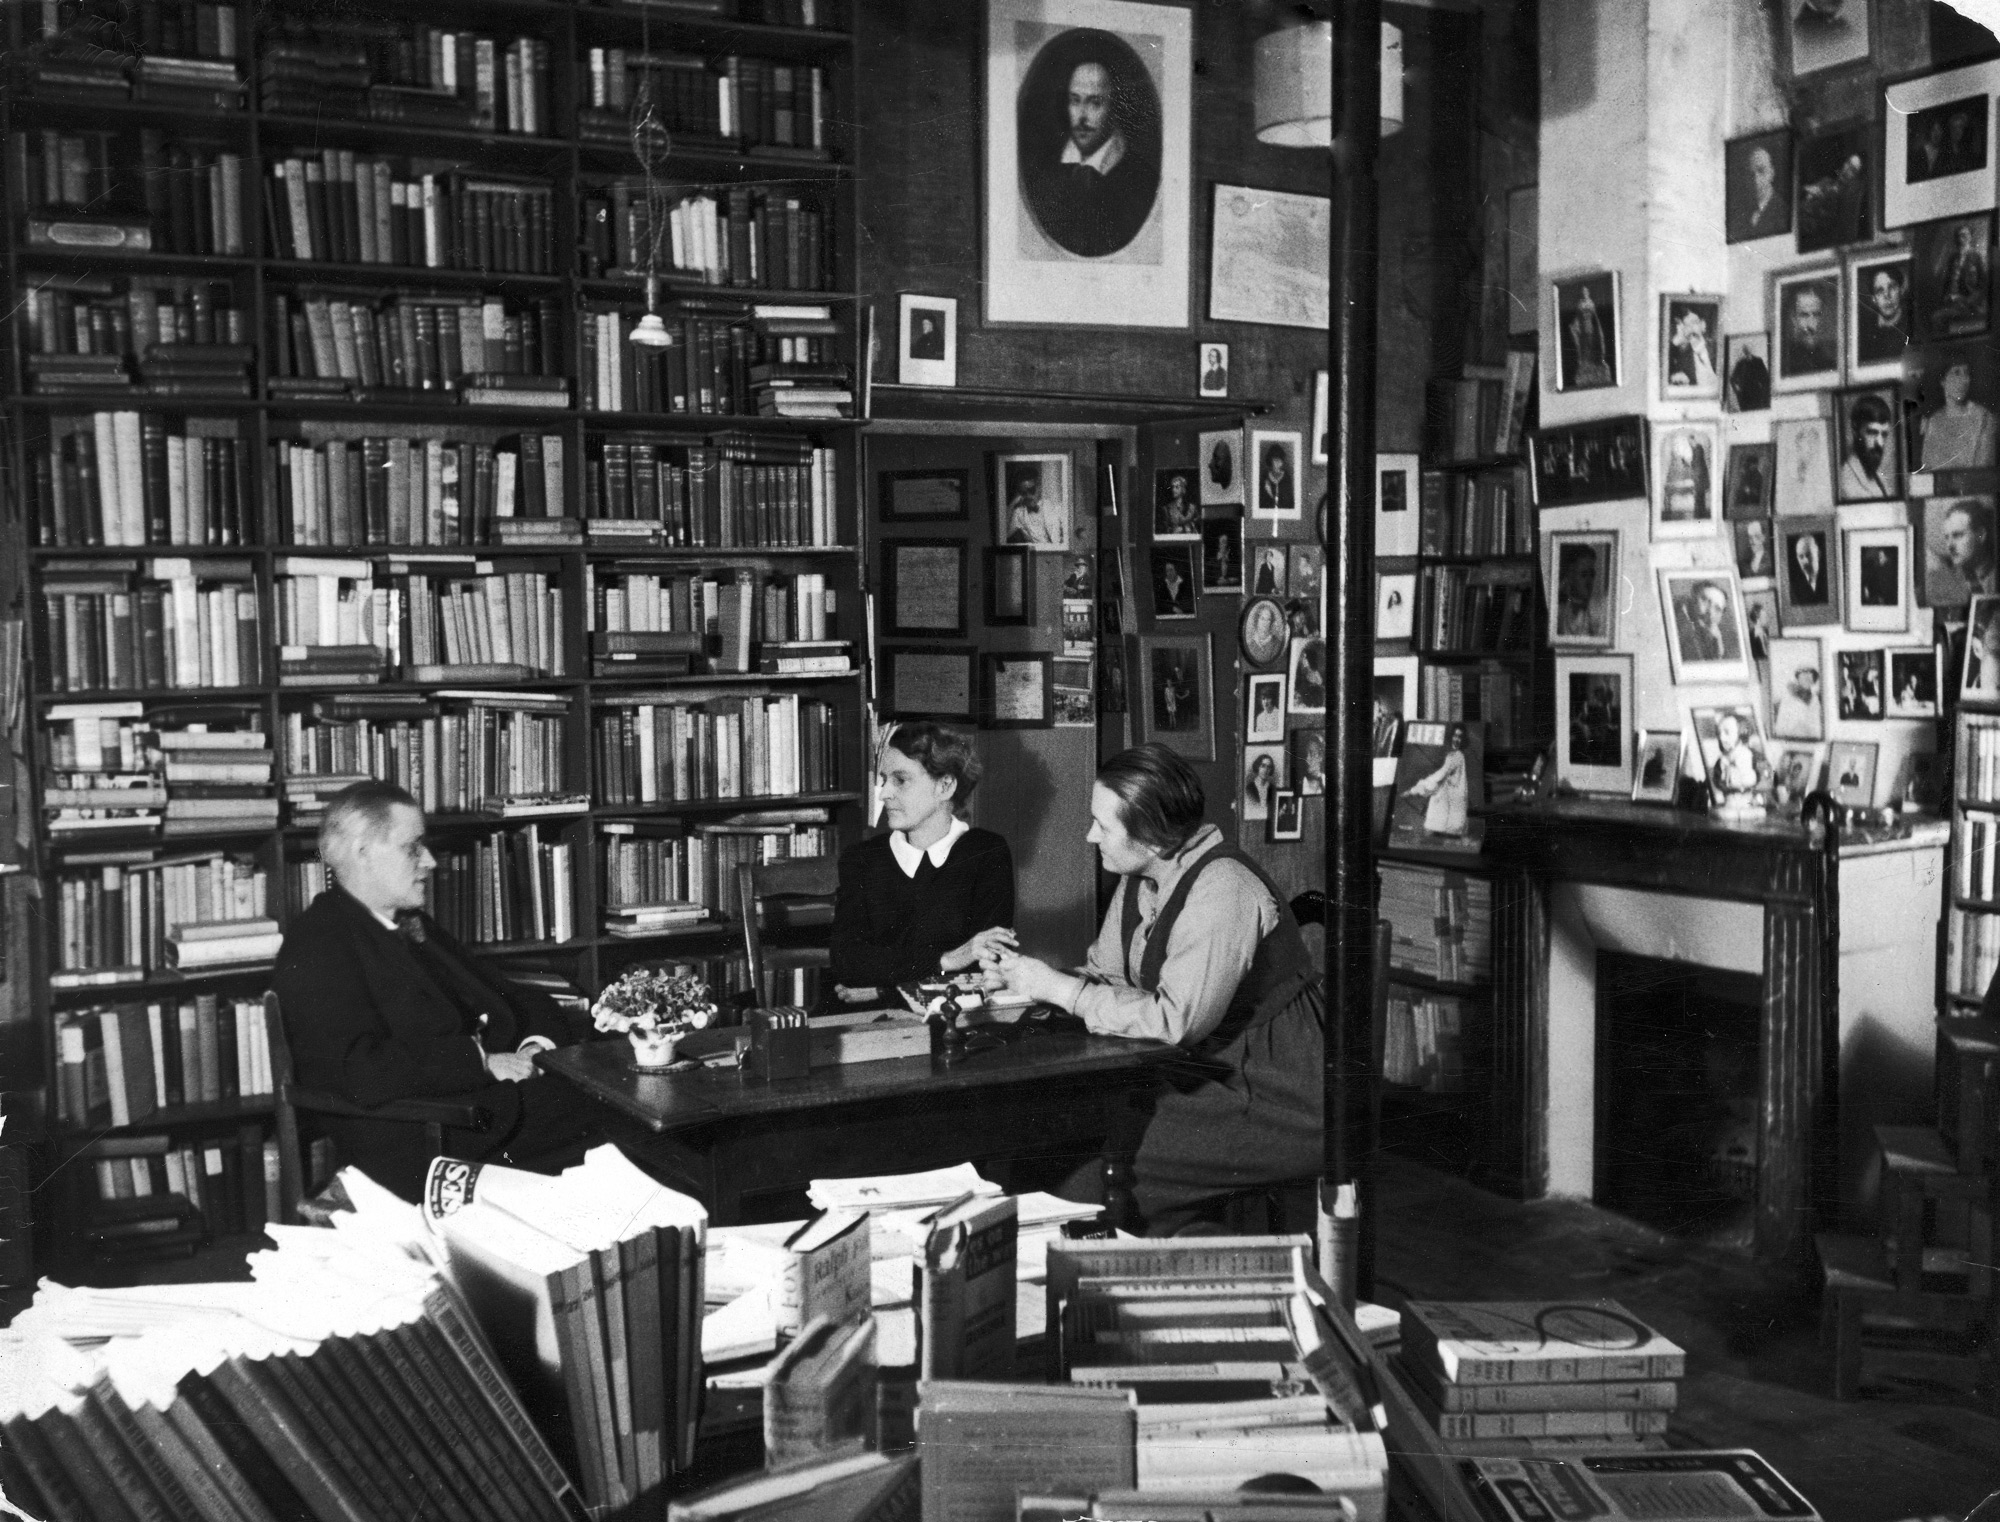 Photograph of James Joyce chatting with Shakespeare & Co. bookstore owner Sylvia Beach and Adrienne Monnier